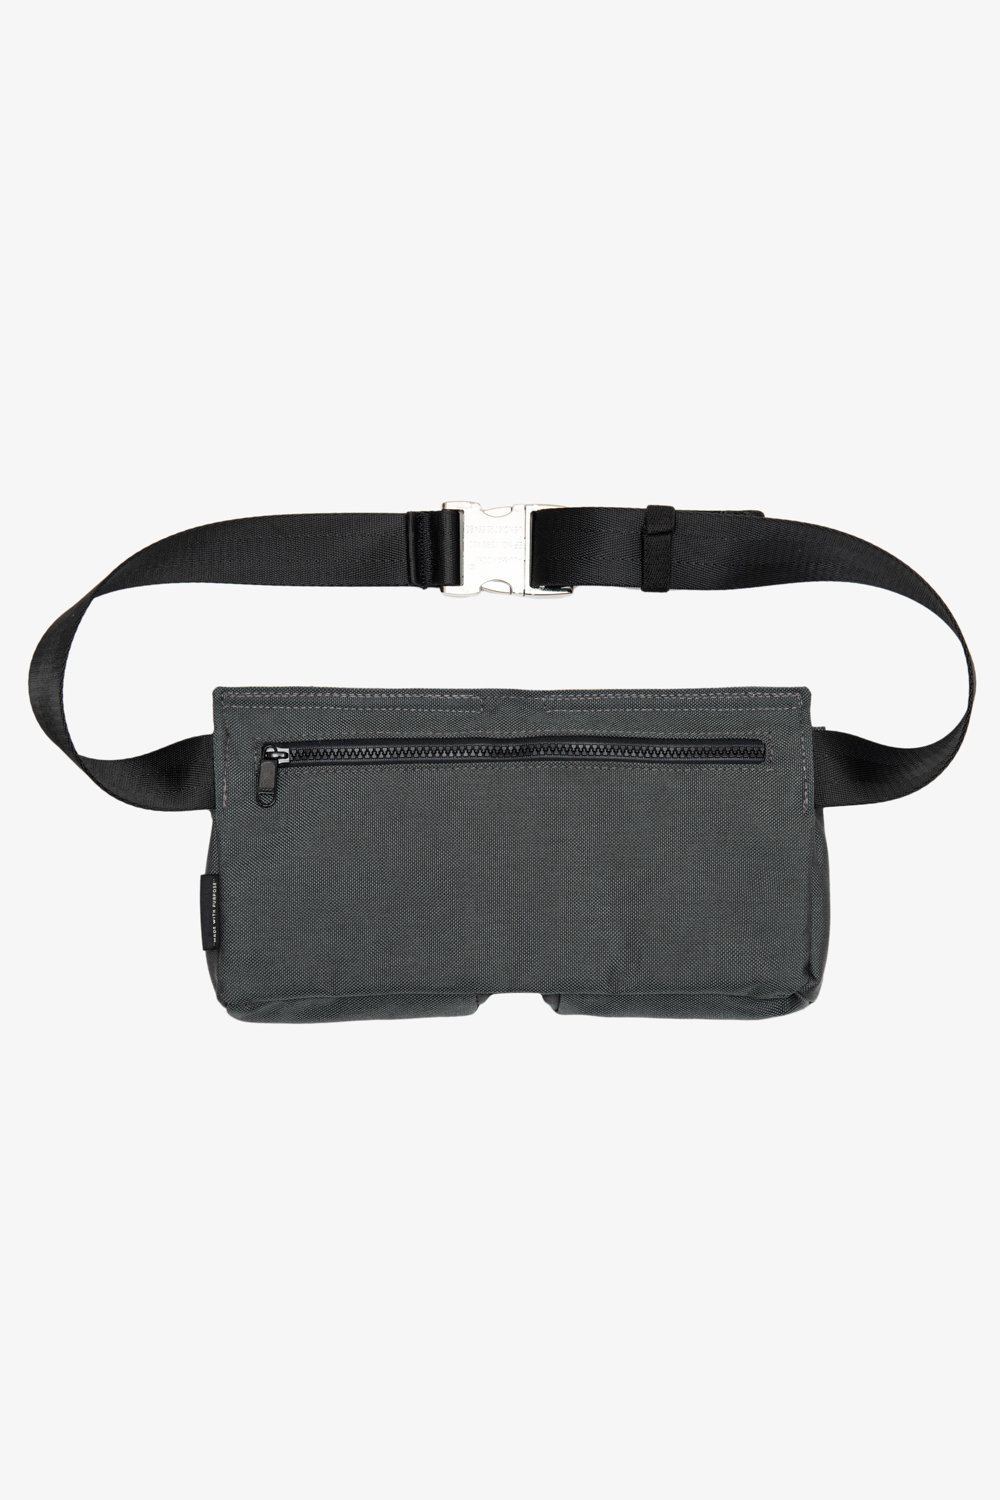 Billie Belt Bag - Gray Jack + Mulligan